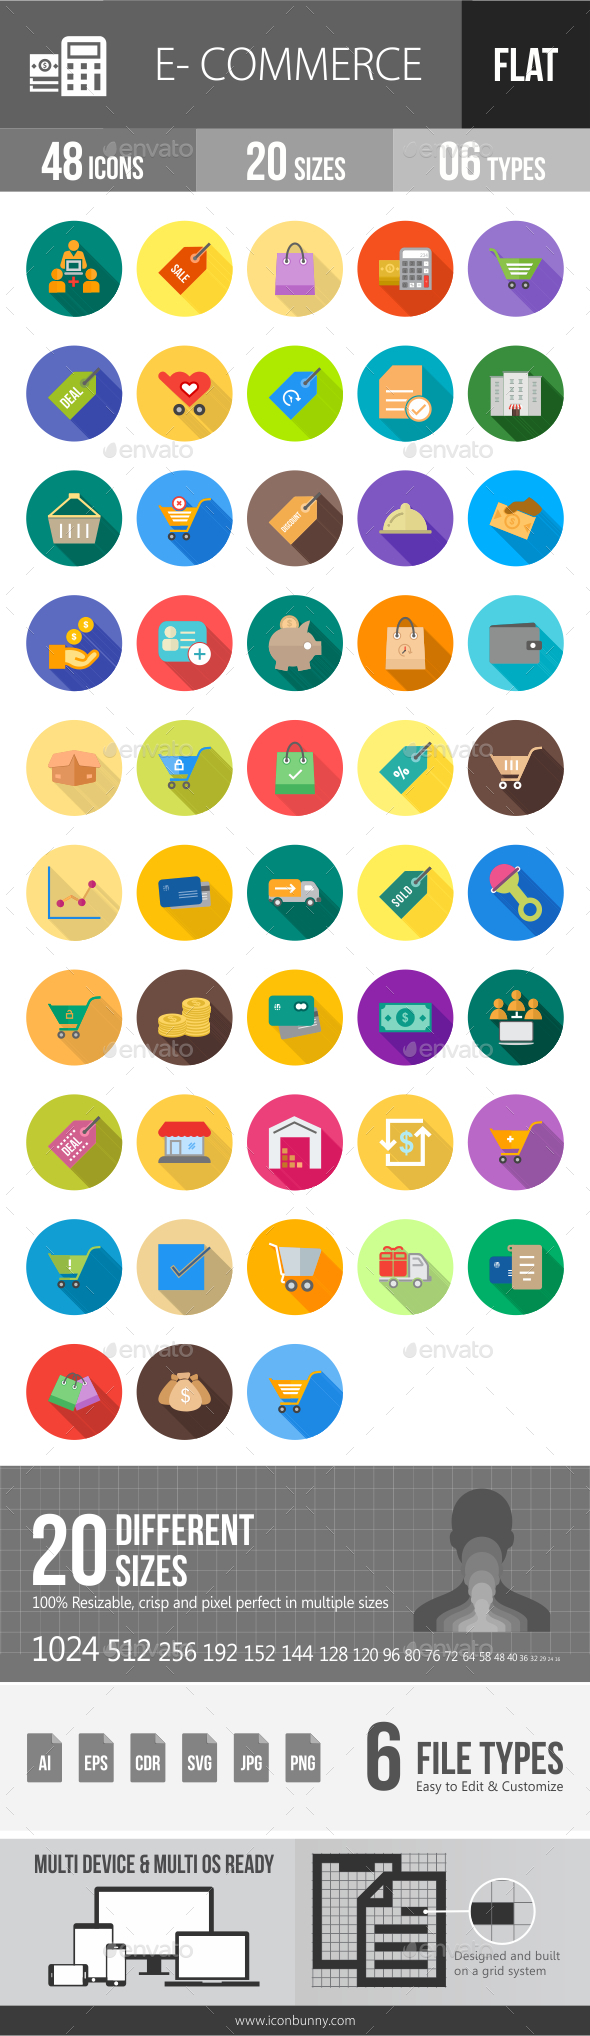 Ecommerce Flat Shadowed Icons